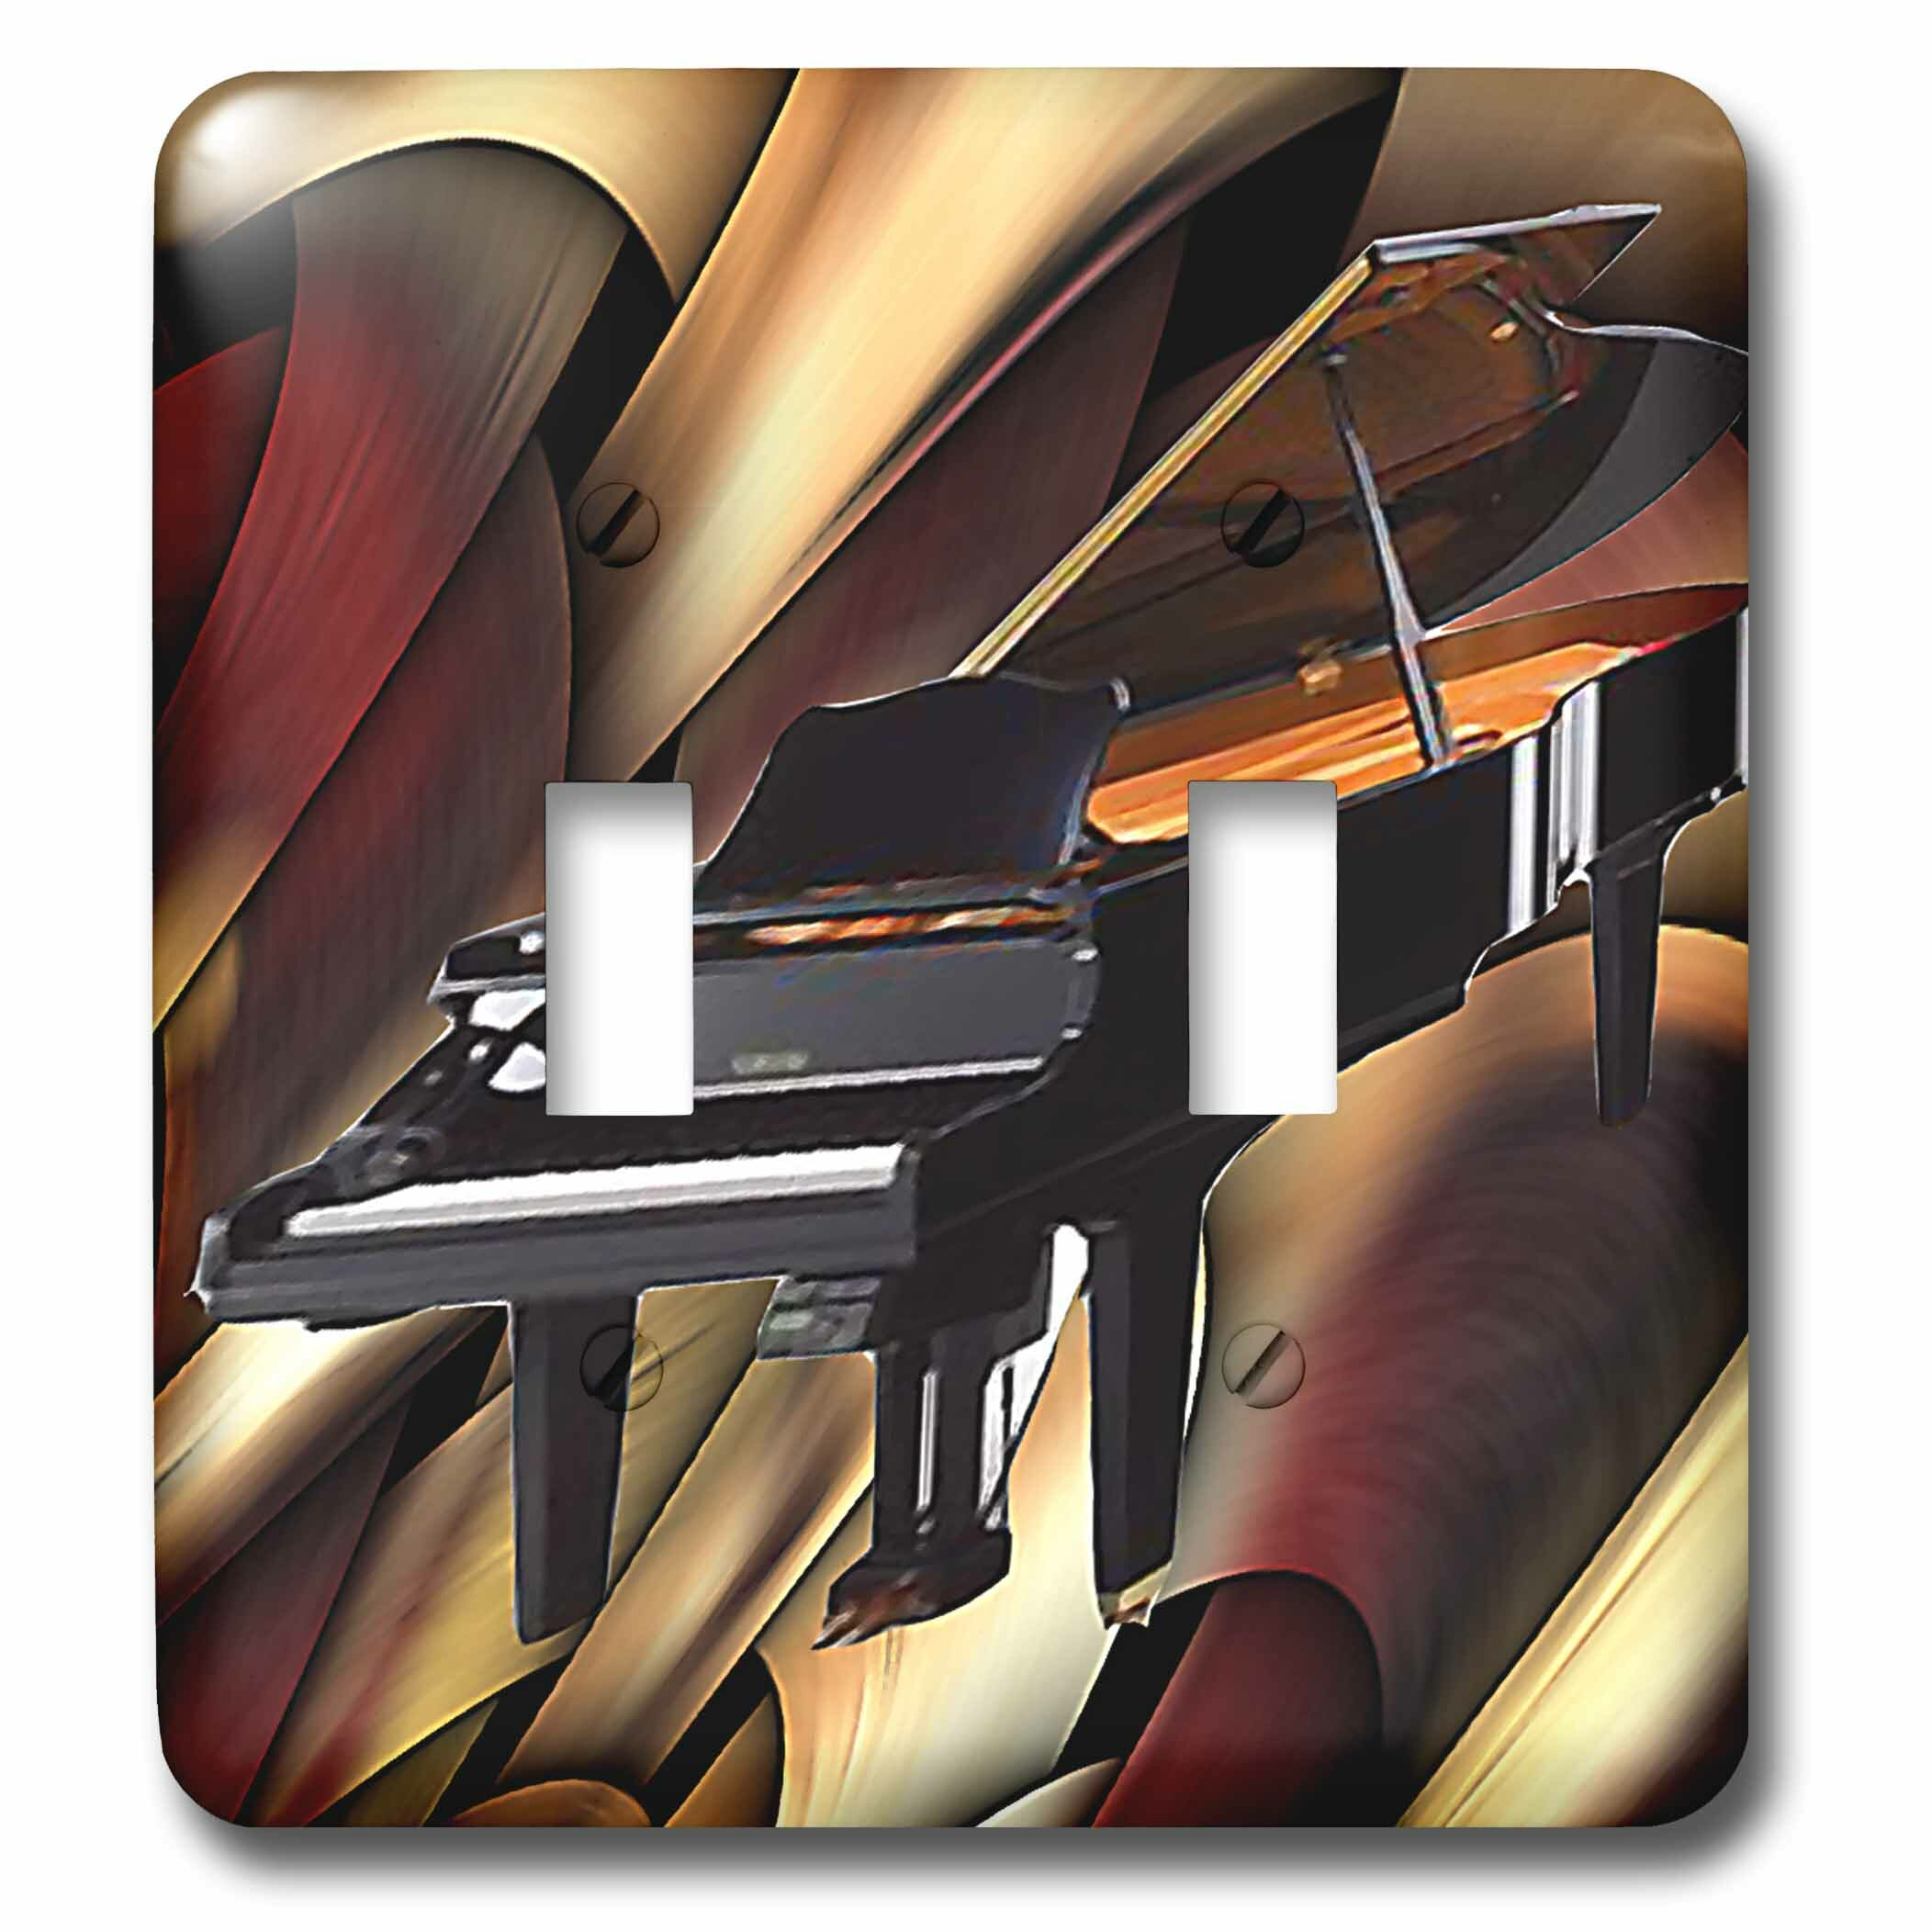 3drose Grand Piano Abstract 2 Gang Toggle Light Switch Wall Plate Wayfair